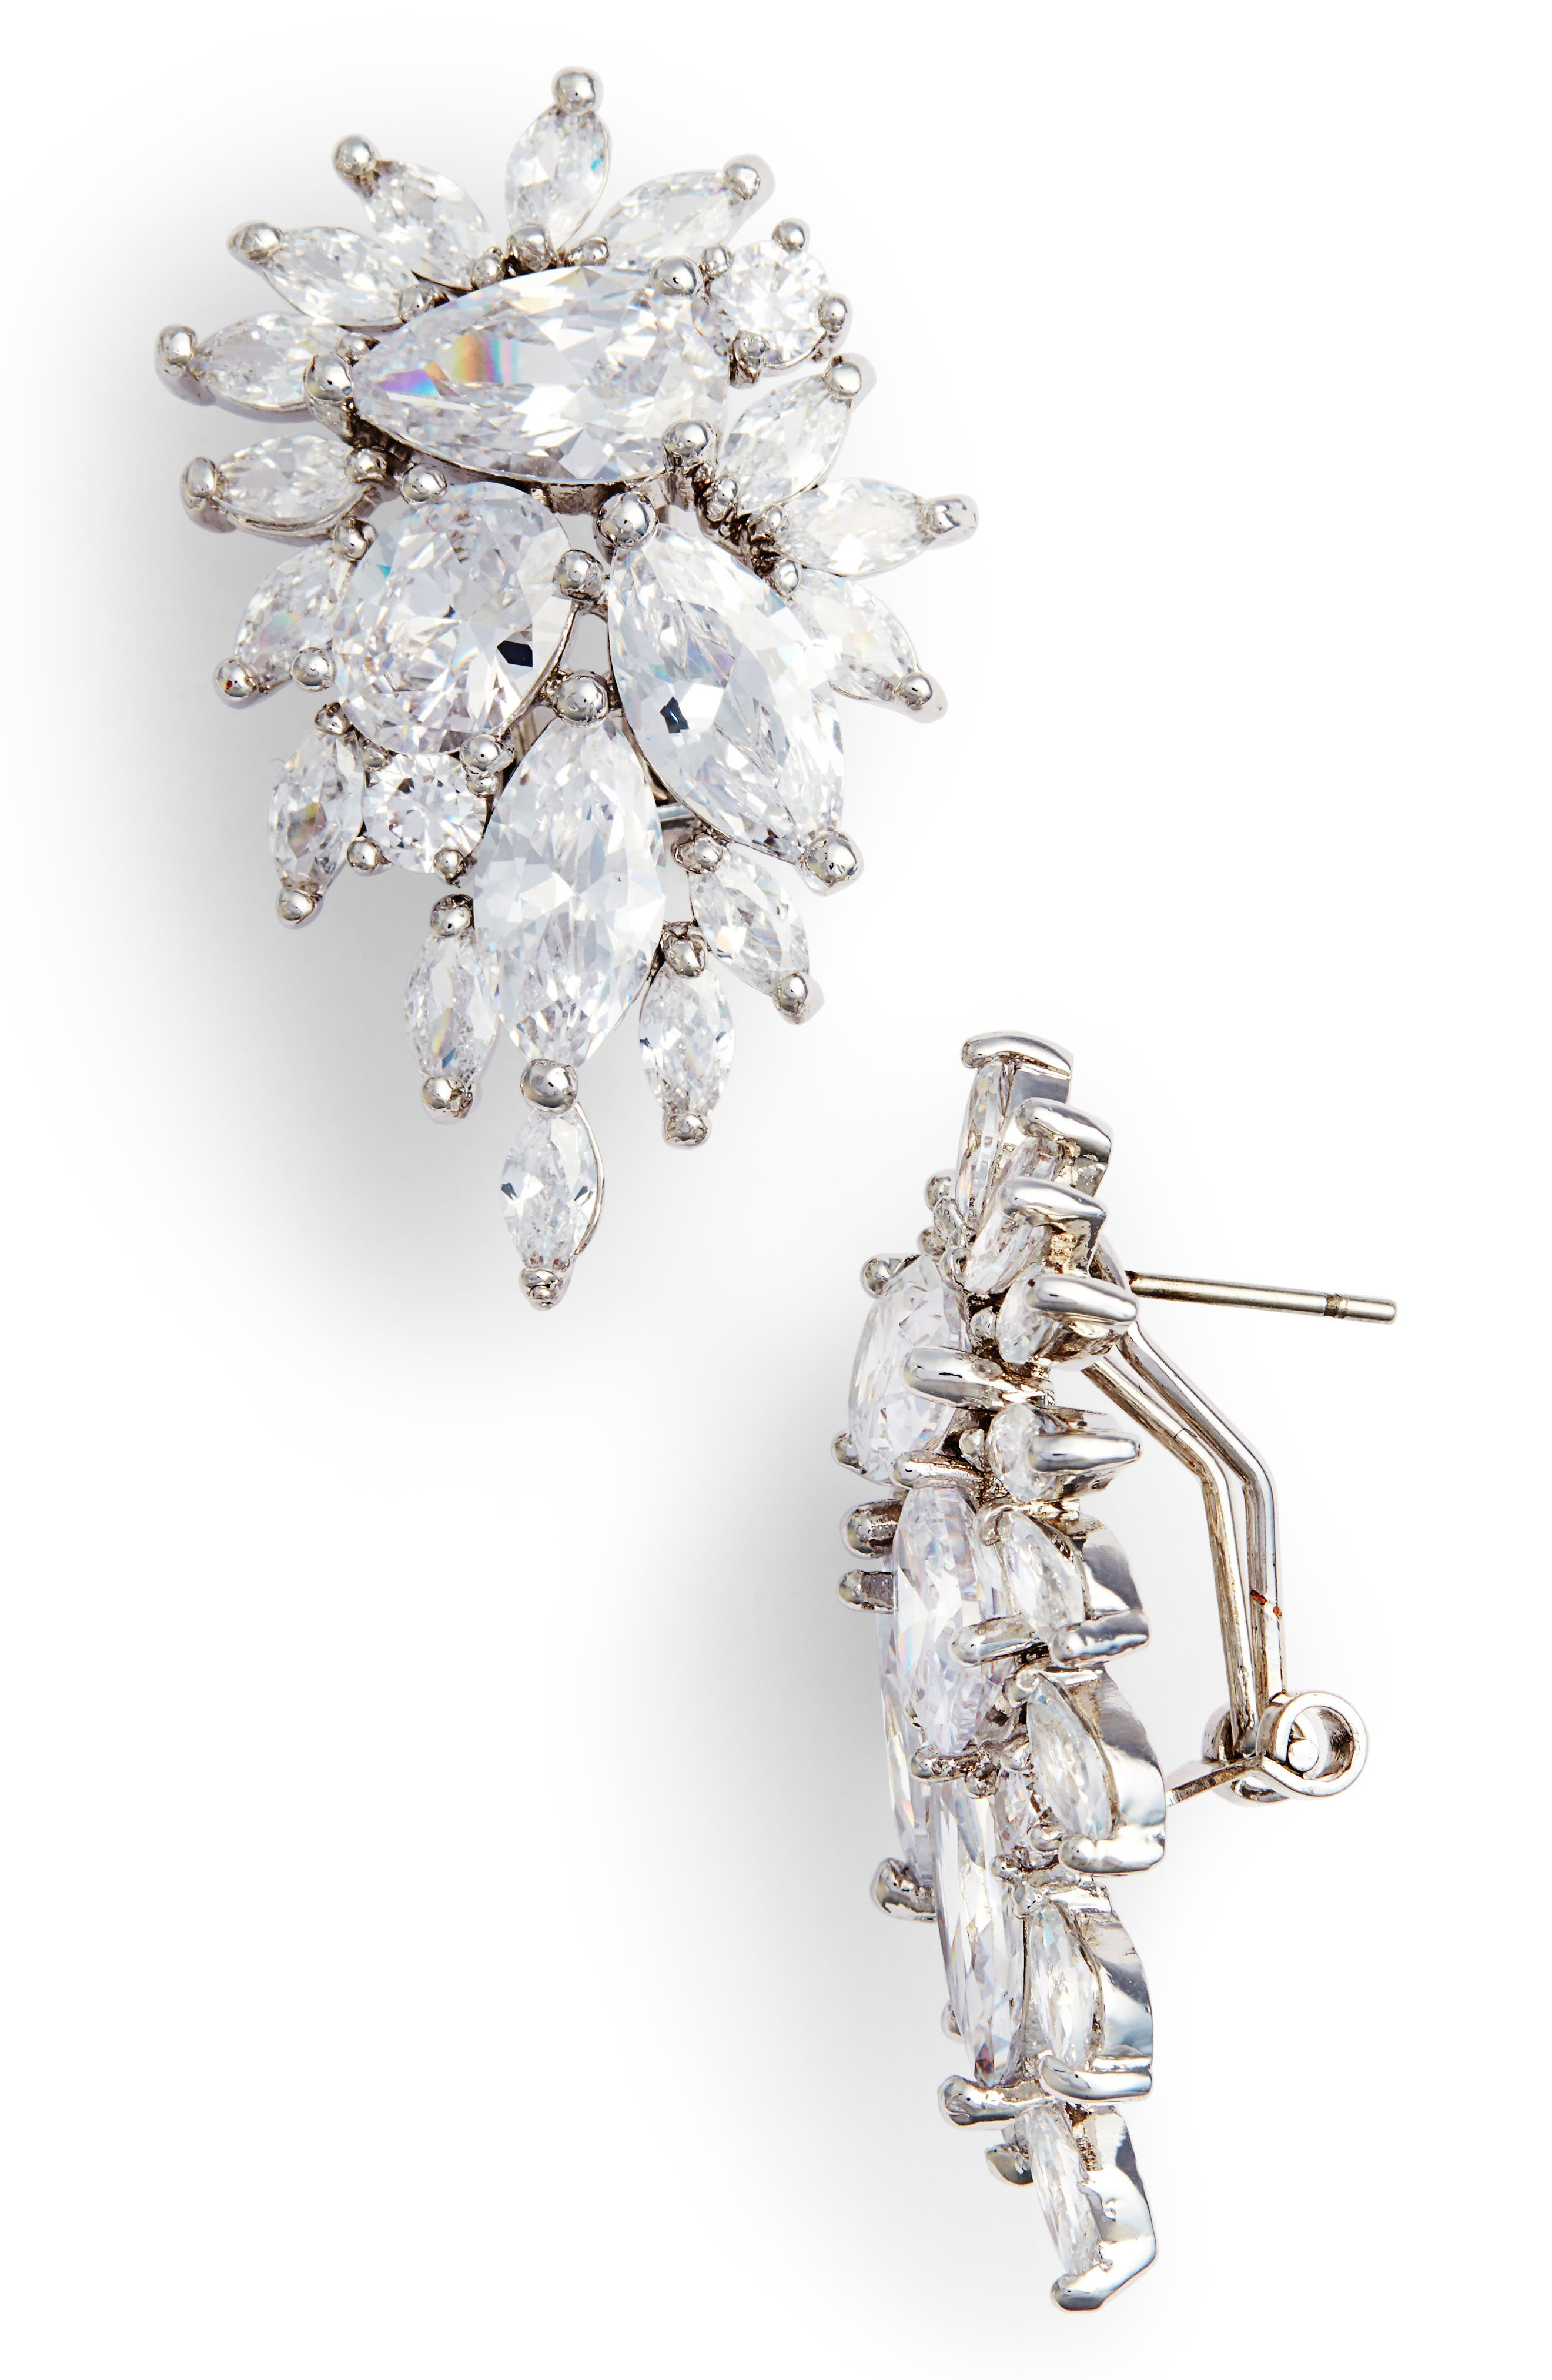 Cluster Omega Clip Earrings,                         Main,                         color, Silver/ White Cz